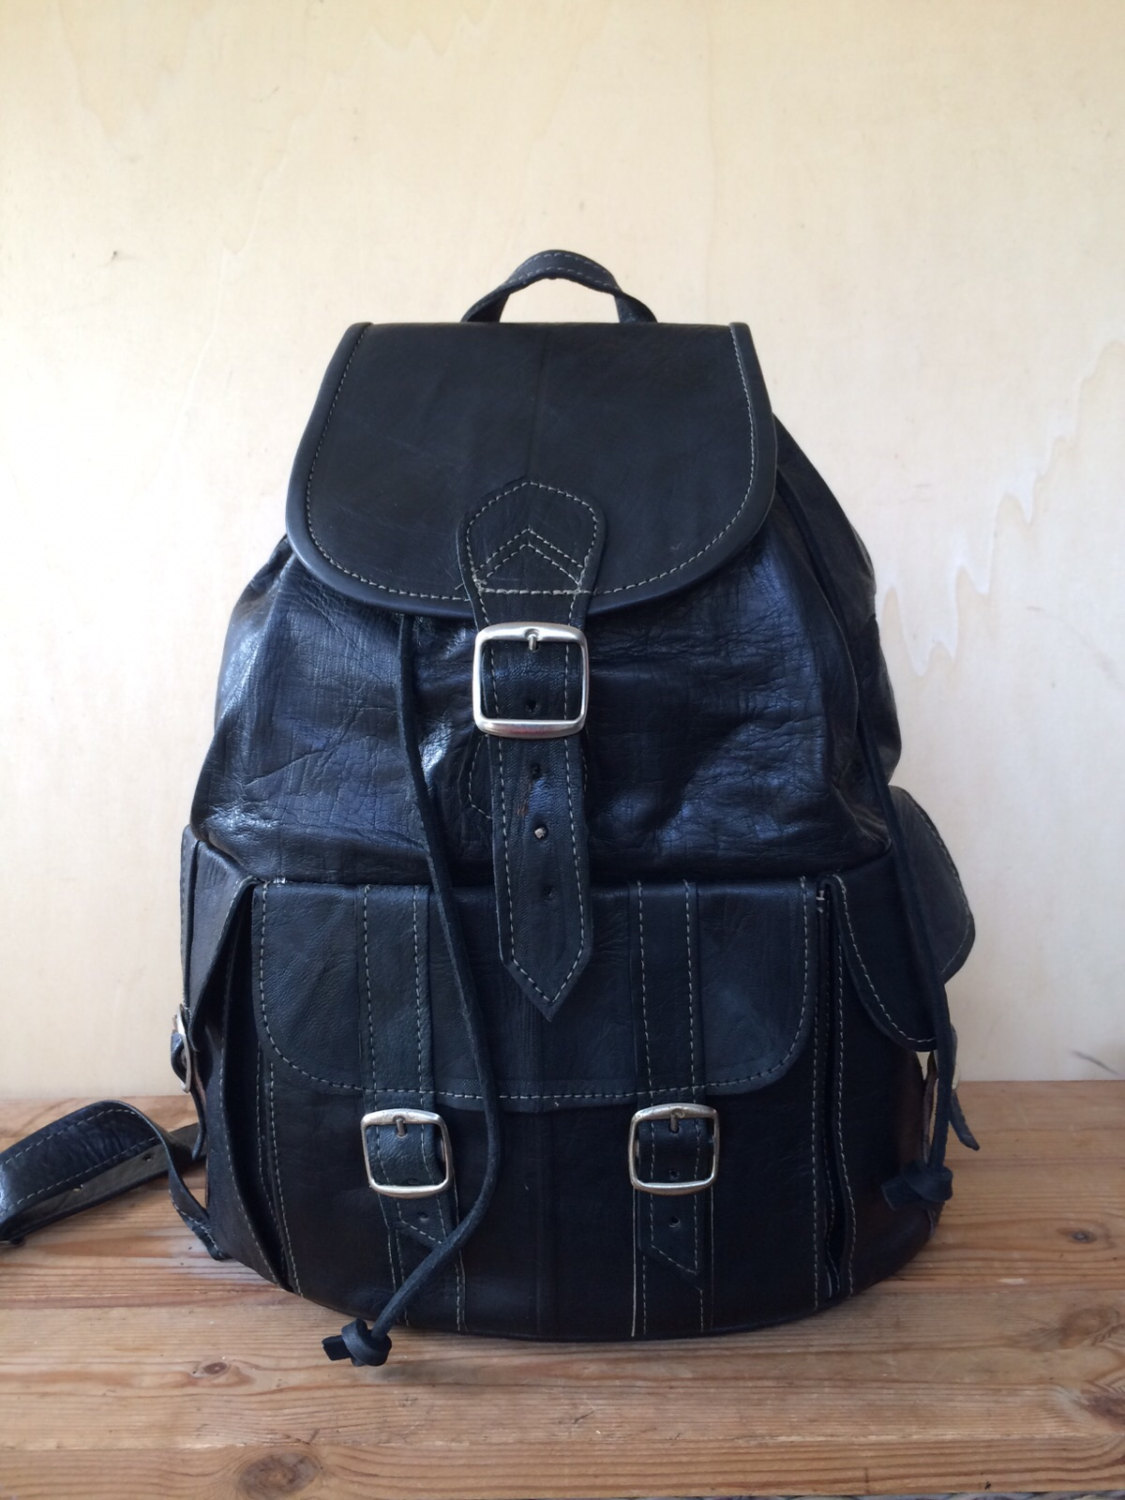 LEATHER BACKPACK - 16 INCHES, leather rucksack, mens backpack, rucksack leather, Hipster Backpack, backpack leather, Leather bag, mochila